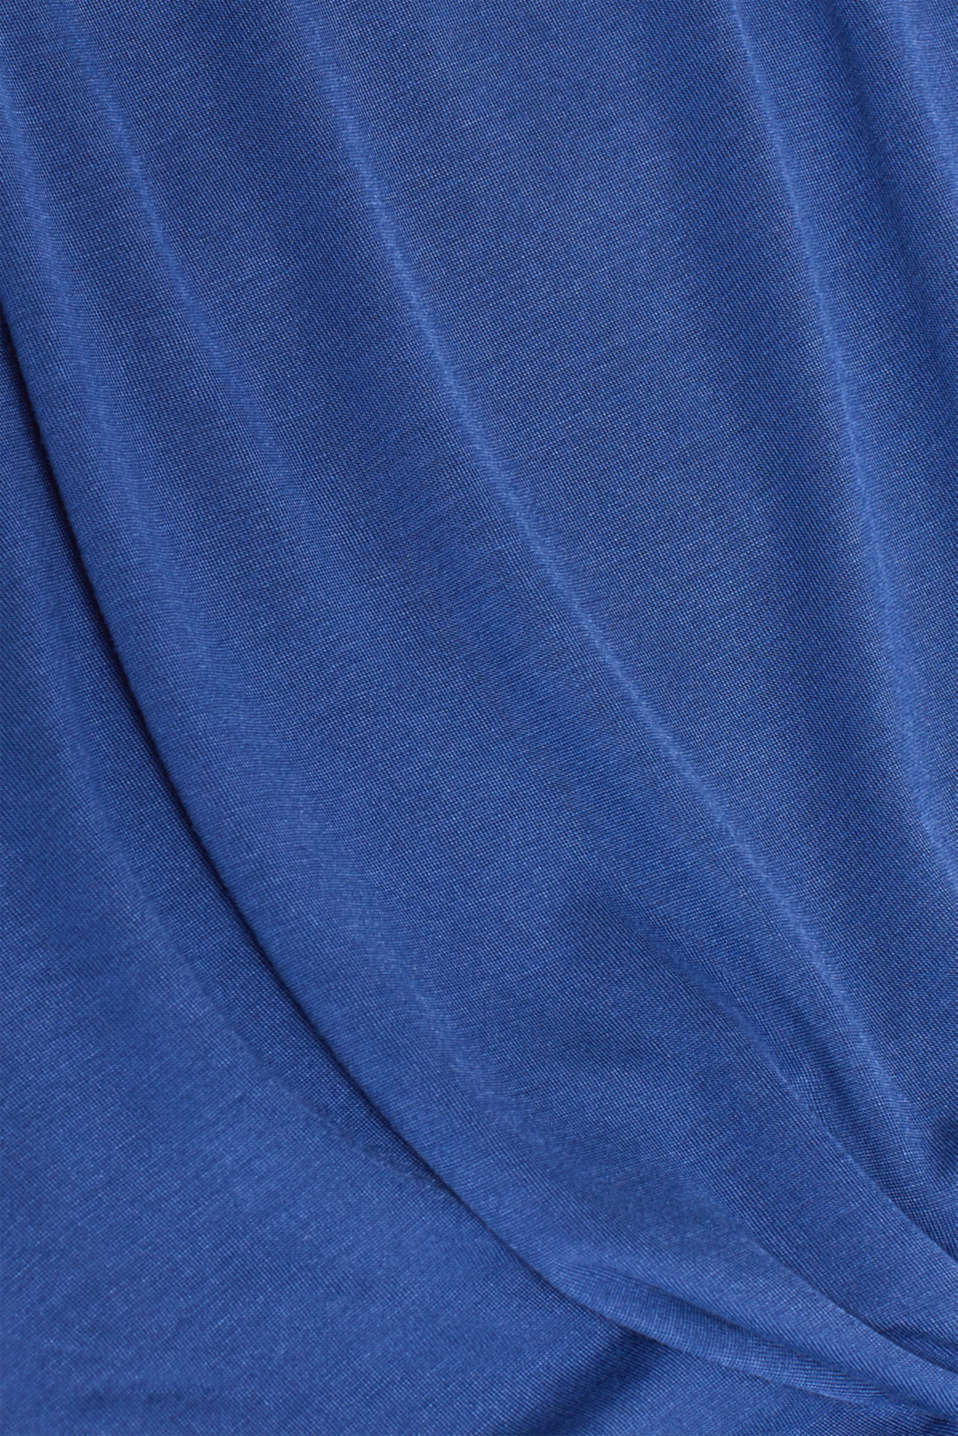 T-shirt with a knot detail on the front hem, LCDARK BLUE, detail image number 4